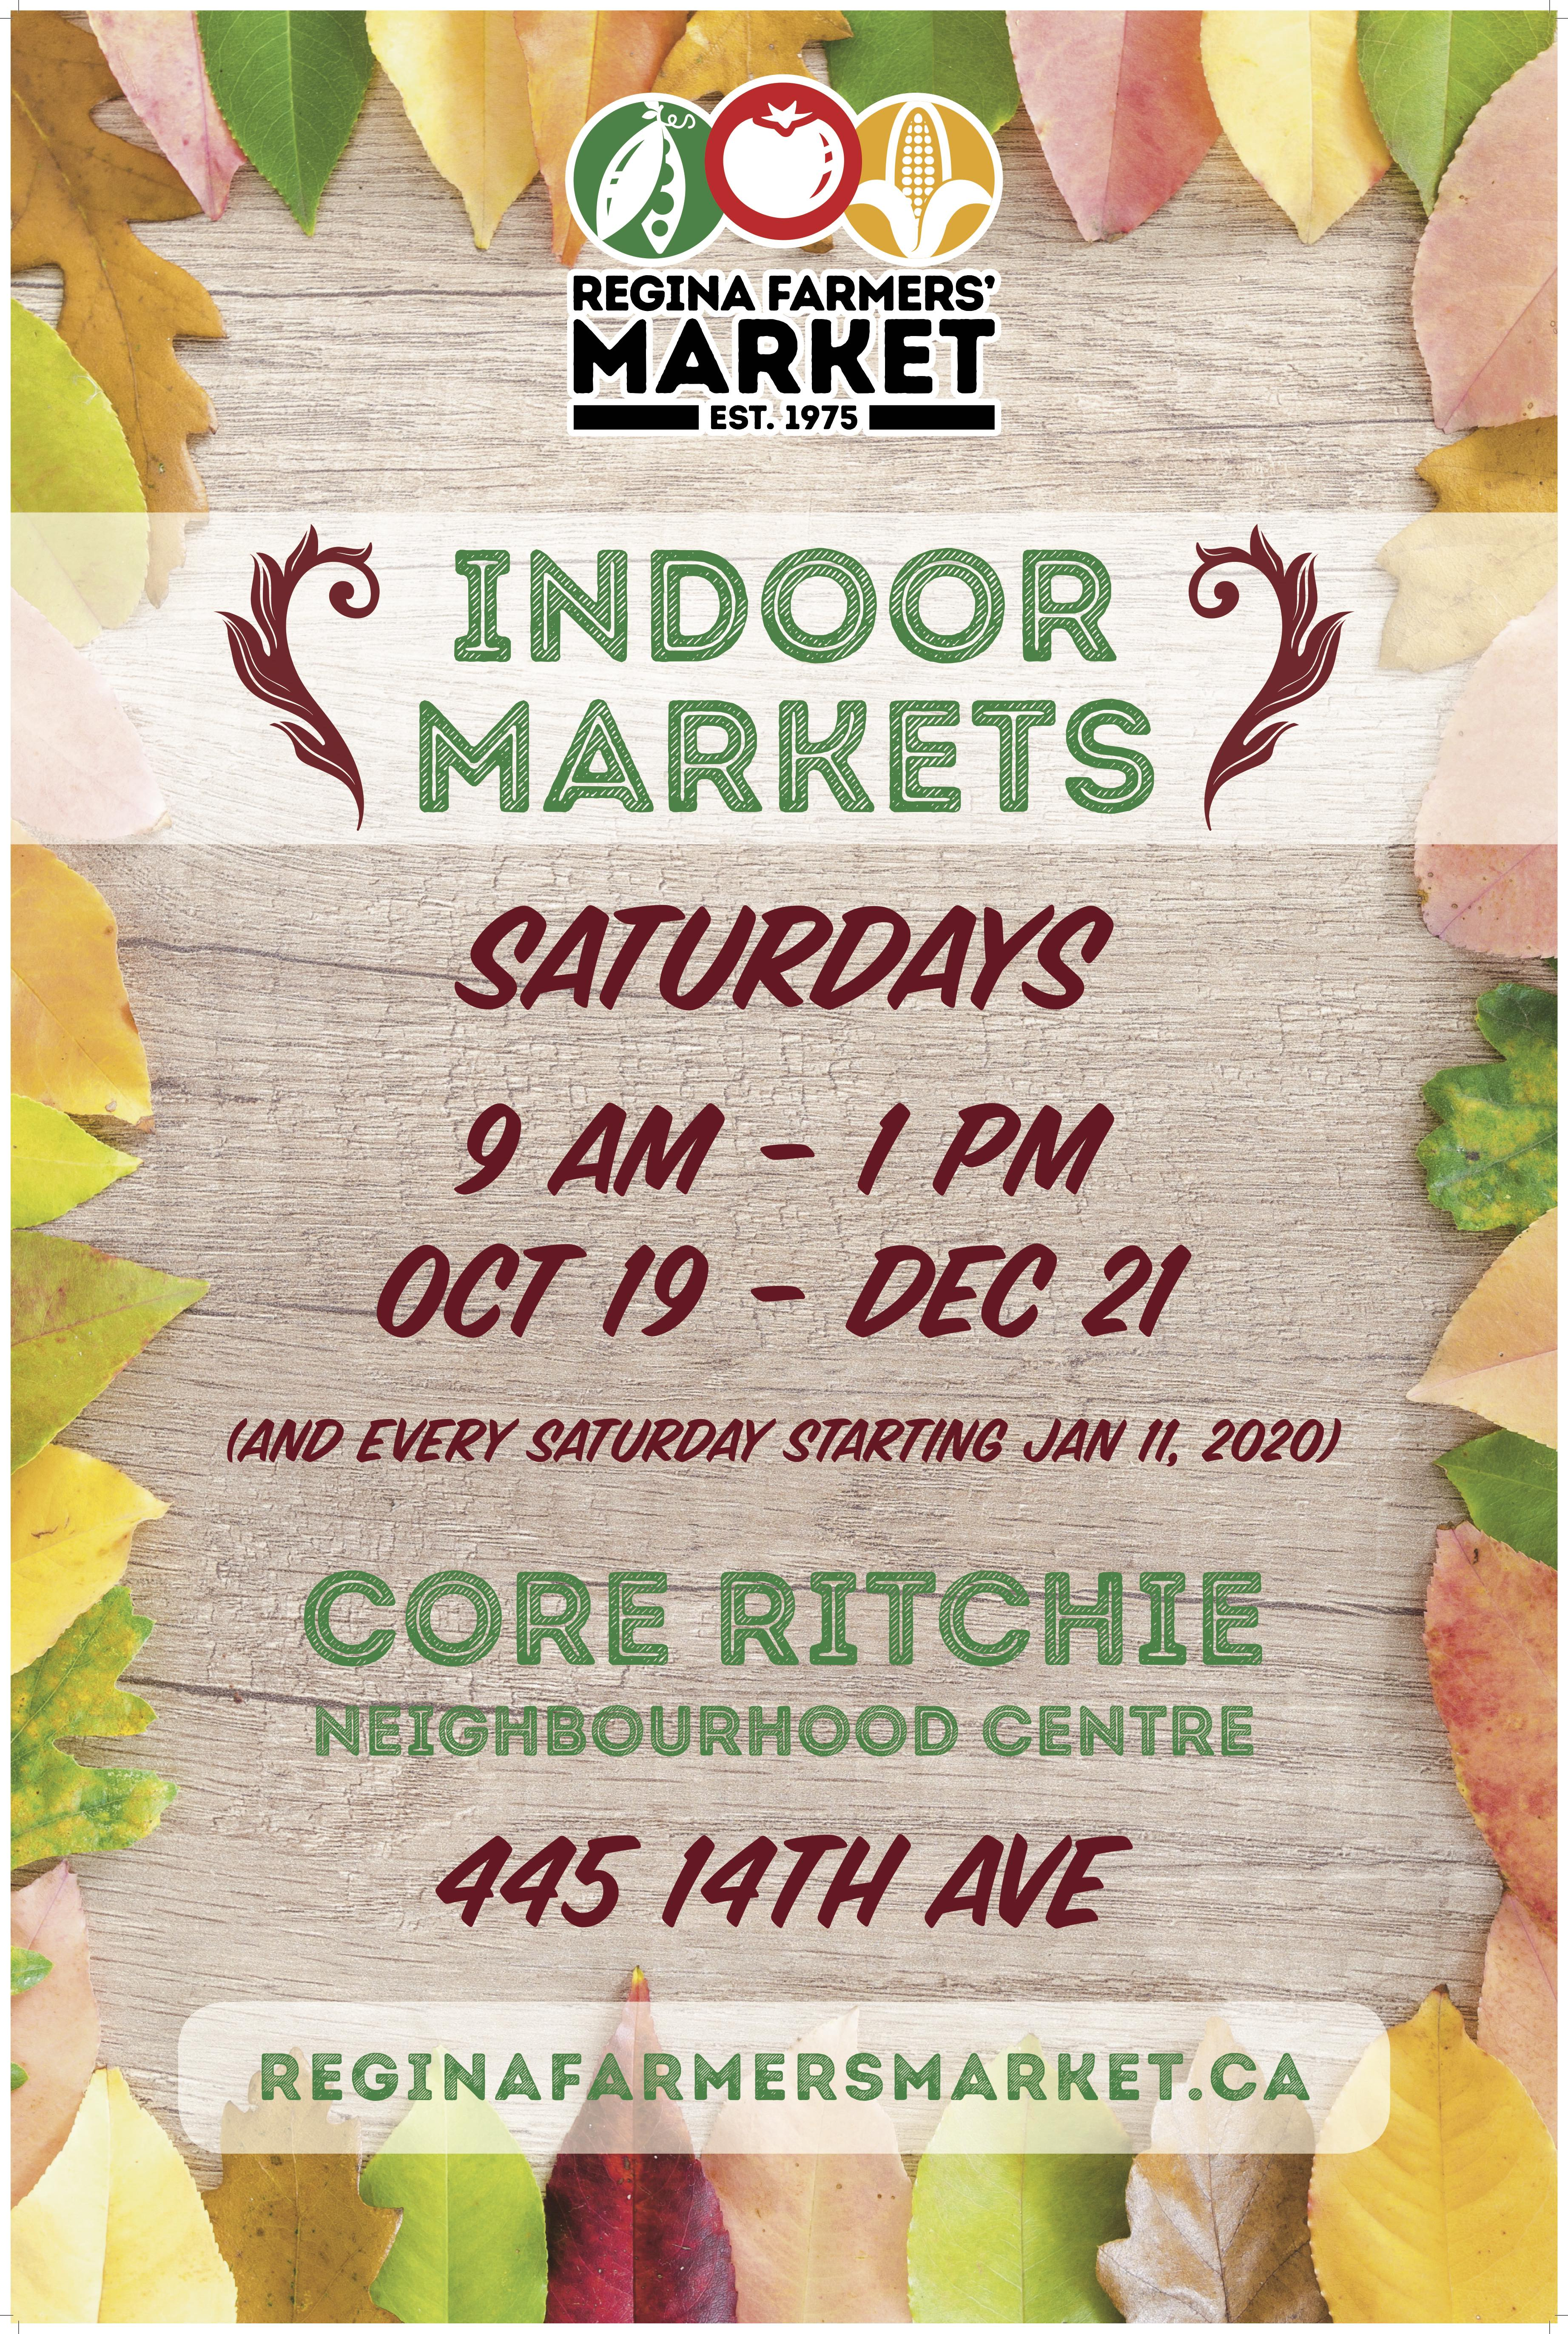 This Week at the RFM (FIRST INDOOR MARKET on Oct 19) - Image 3